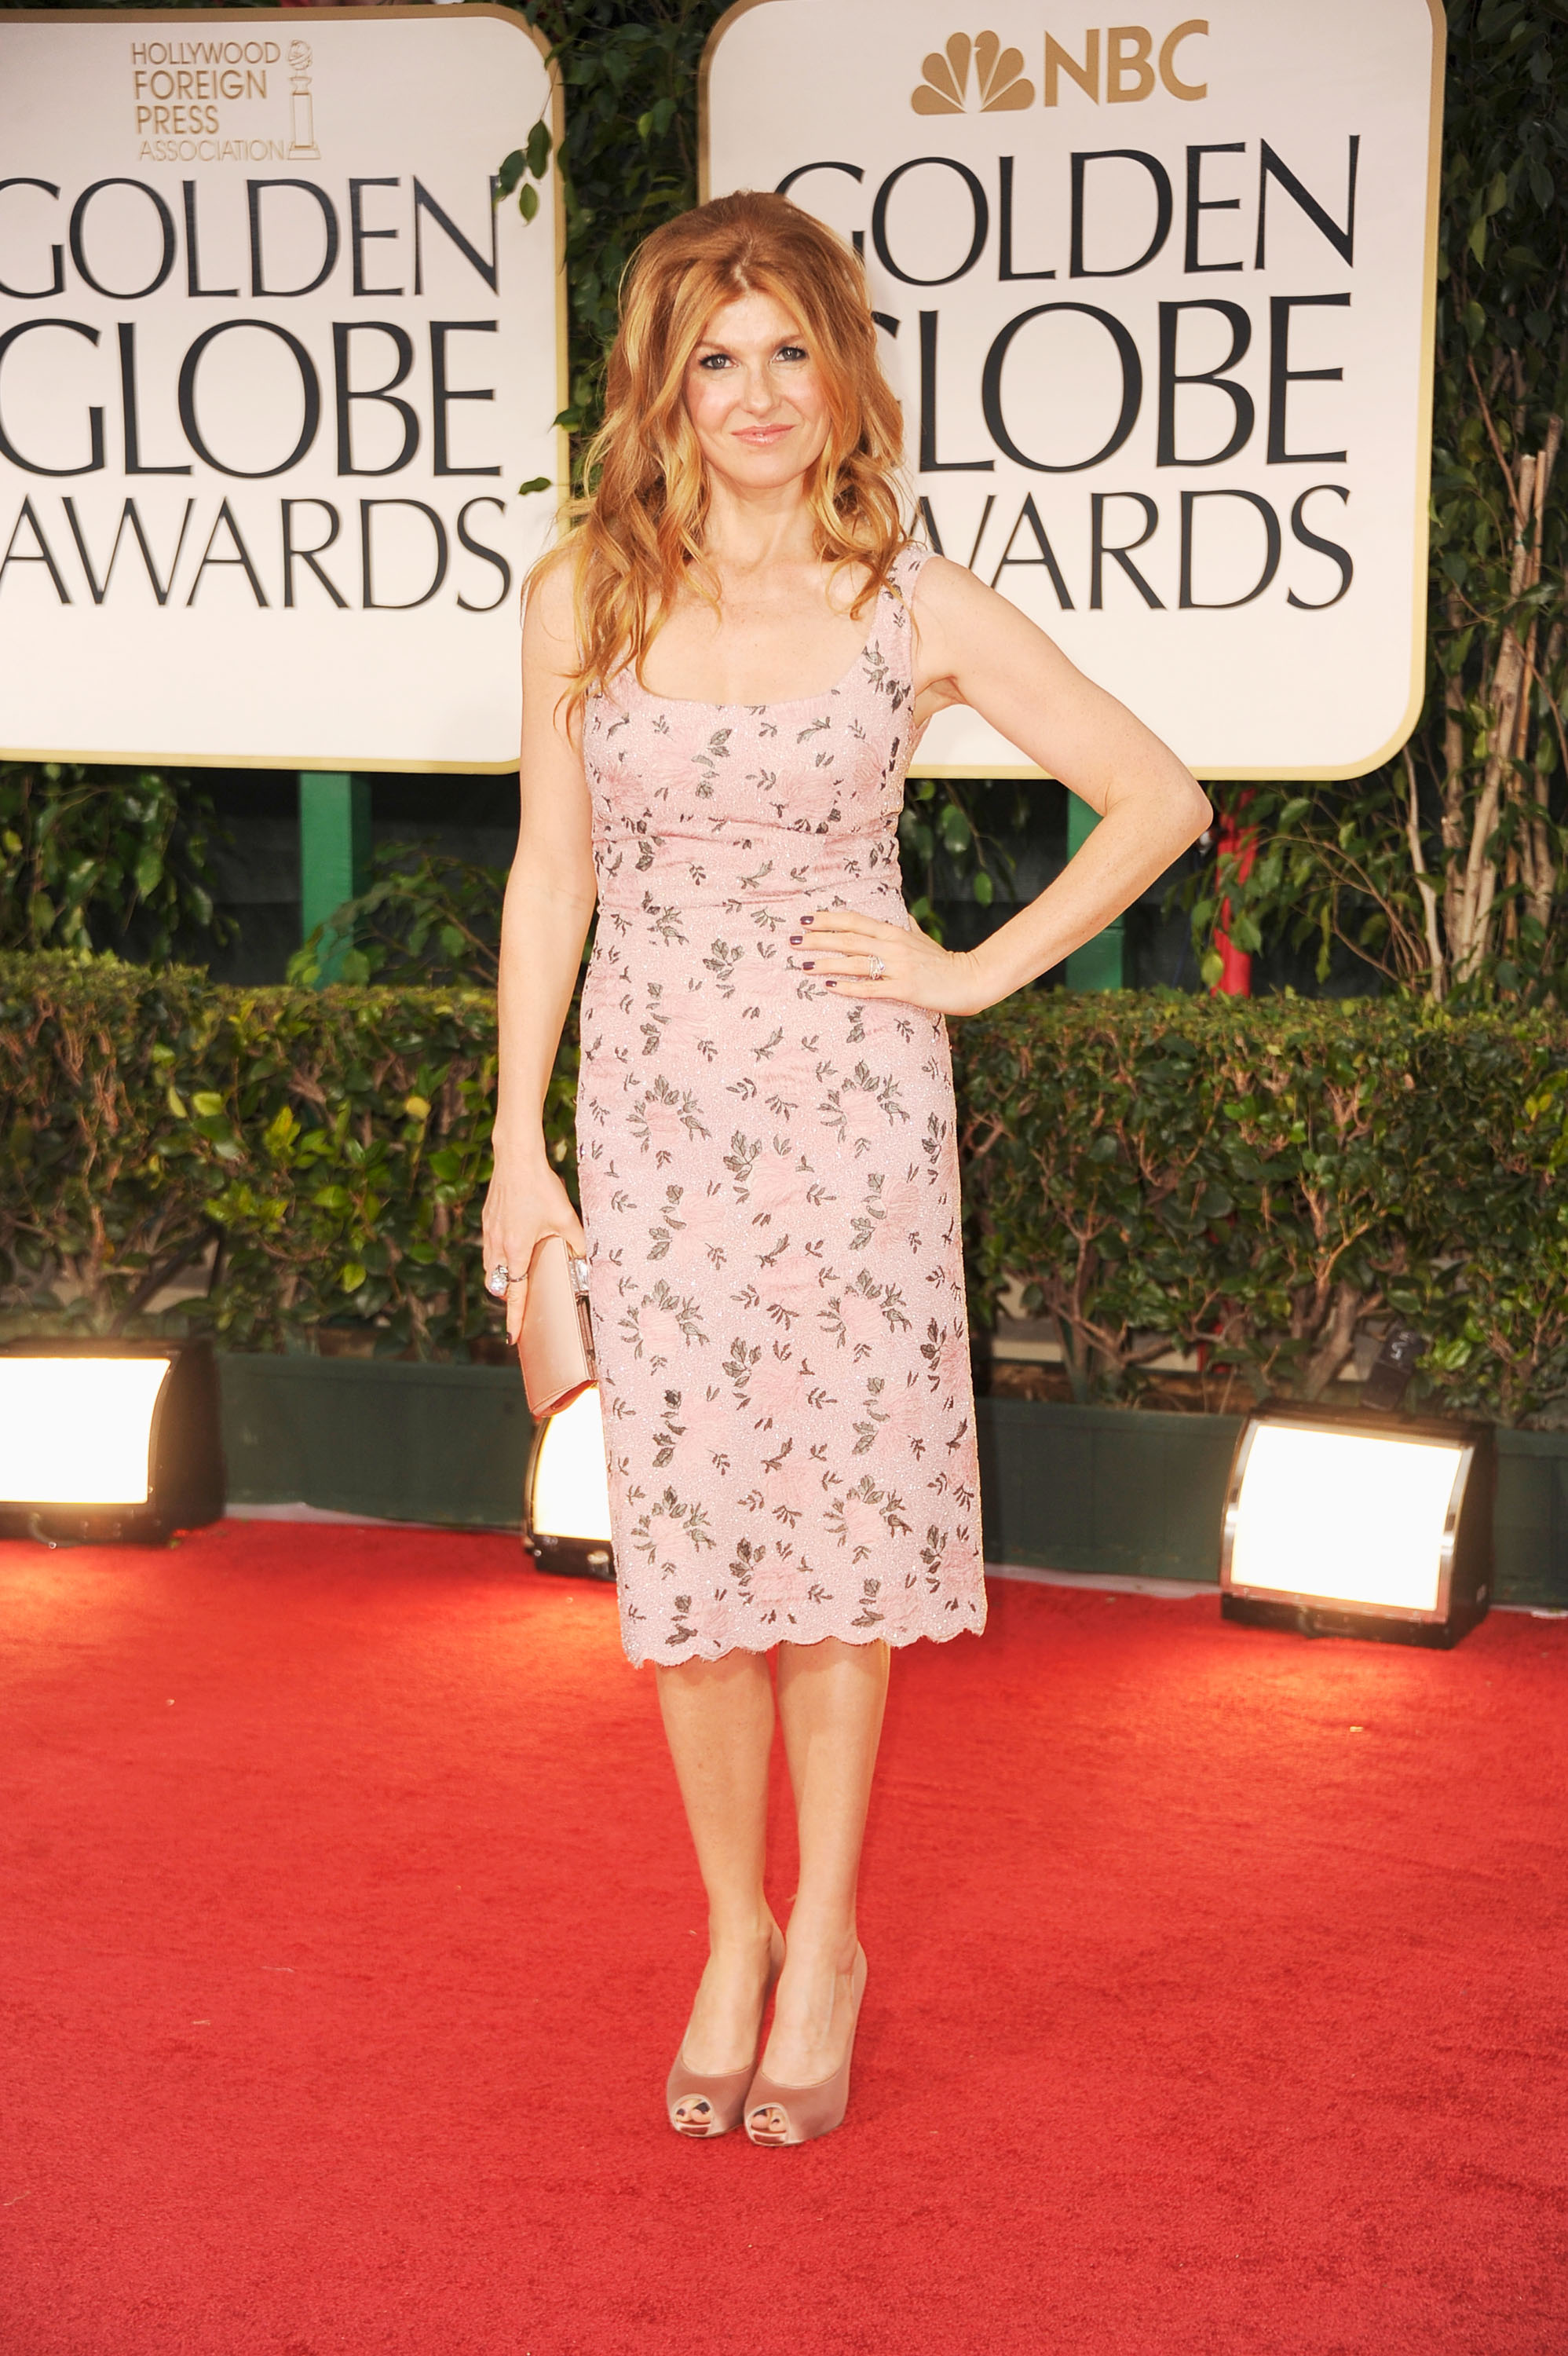 Connie Britton at the Golden Globes.